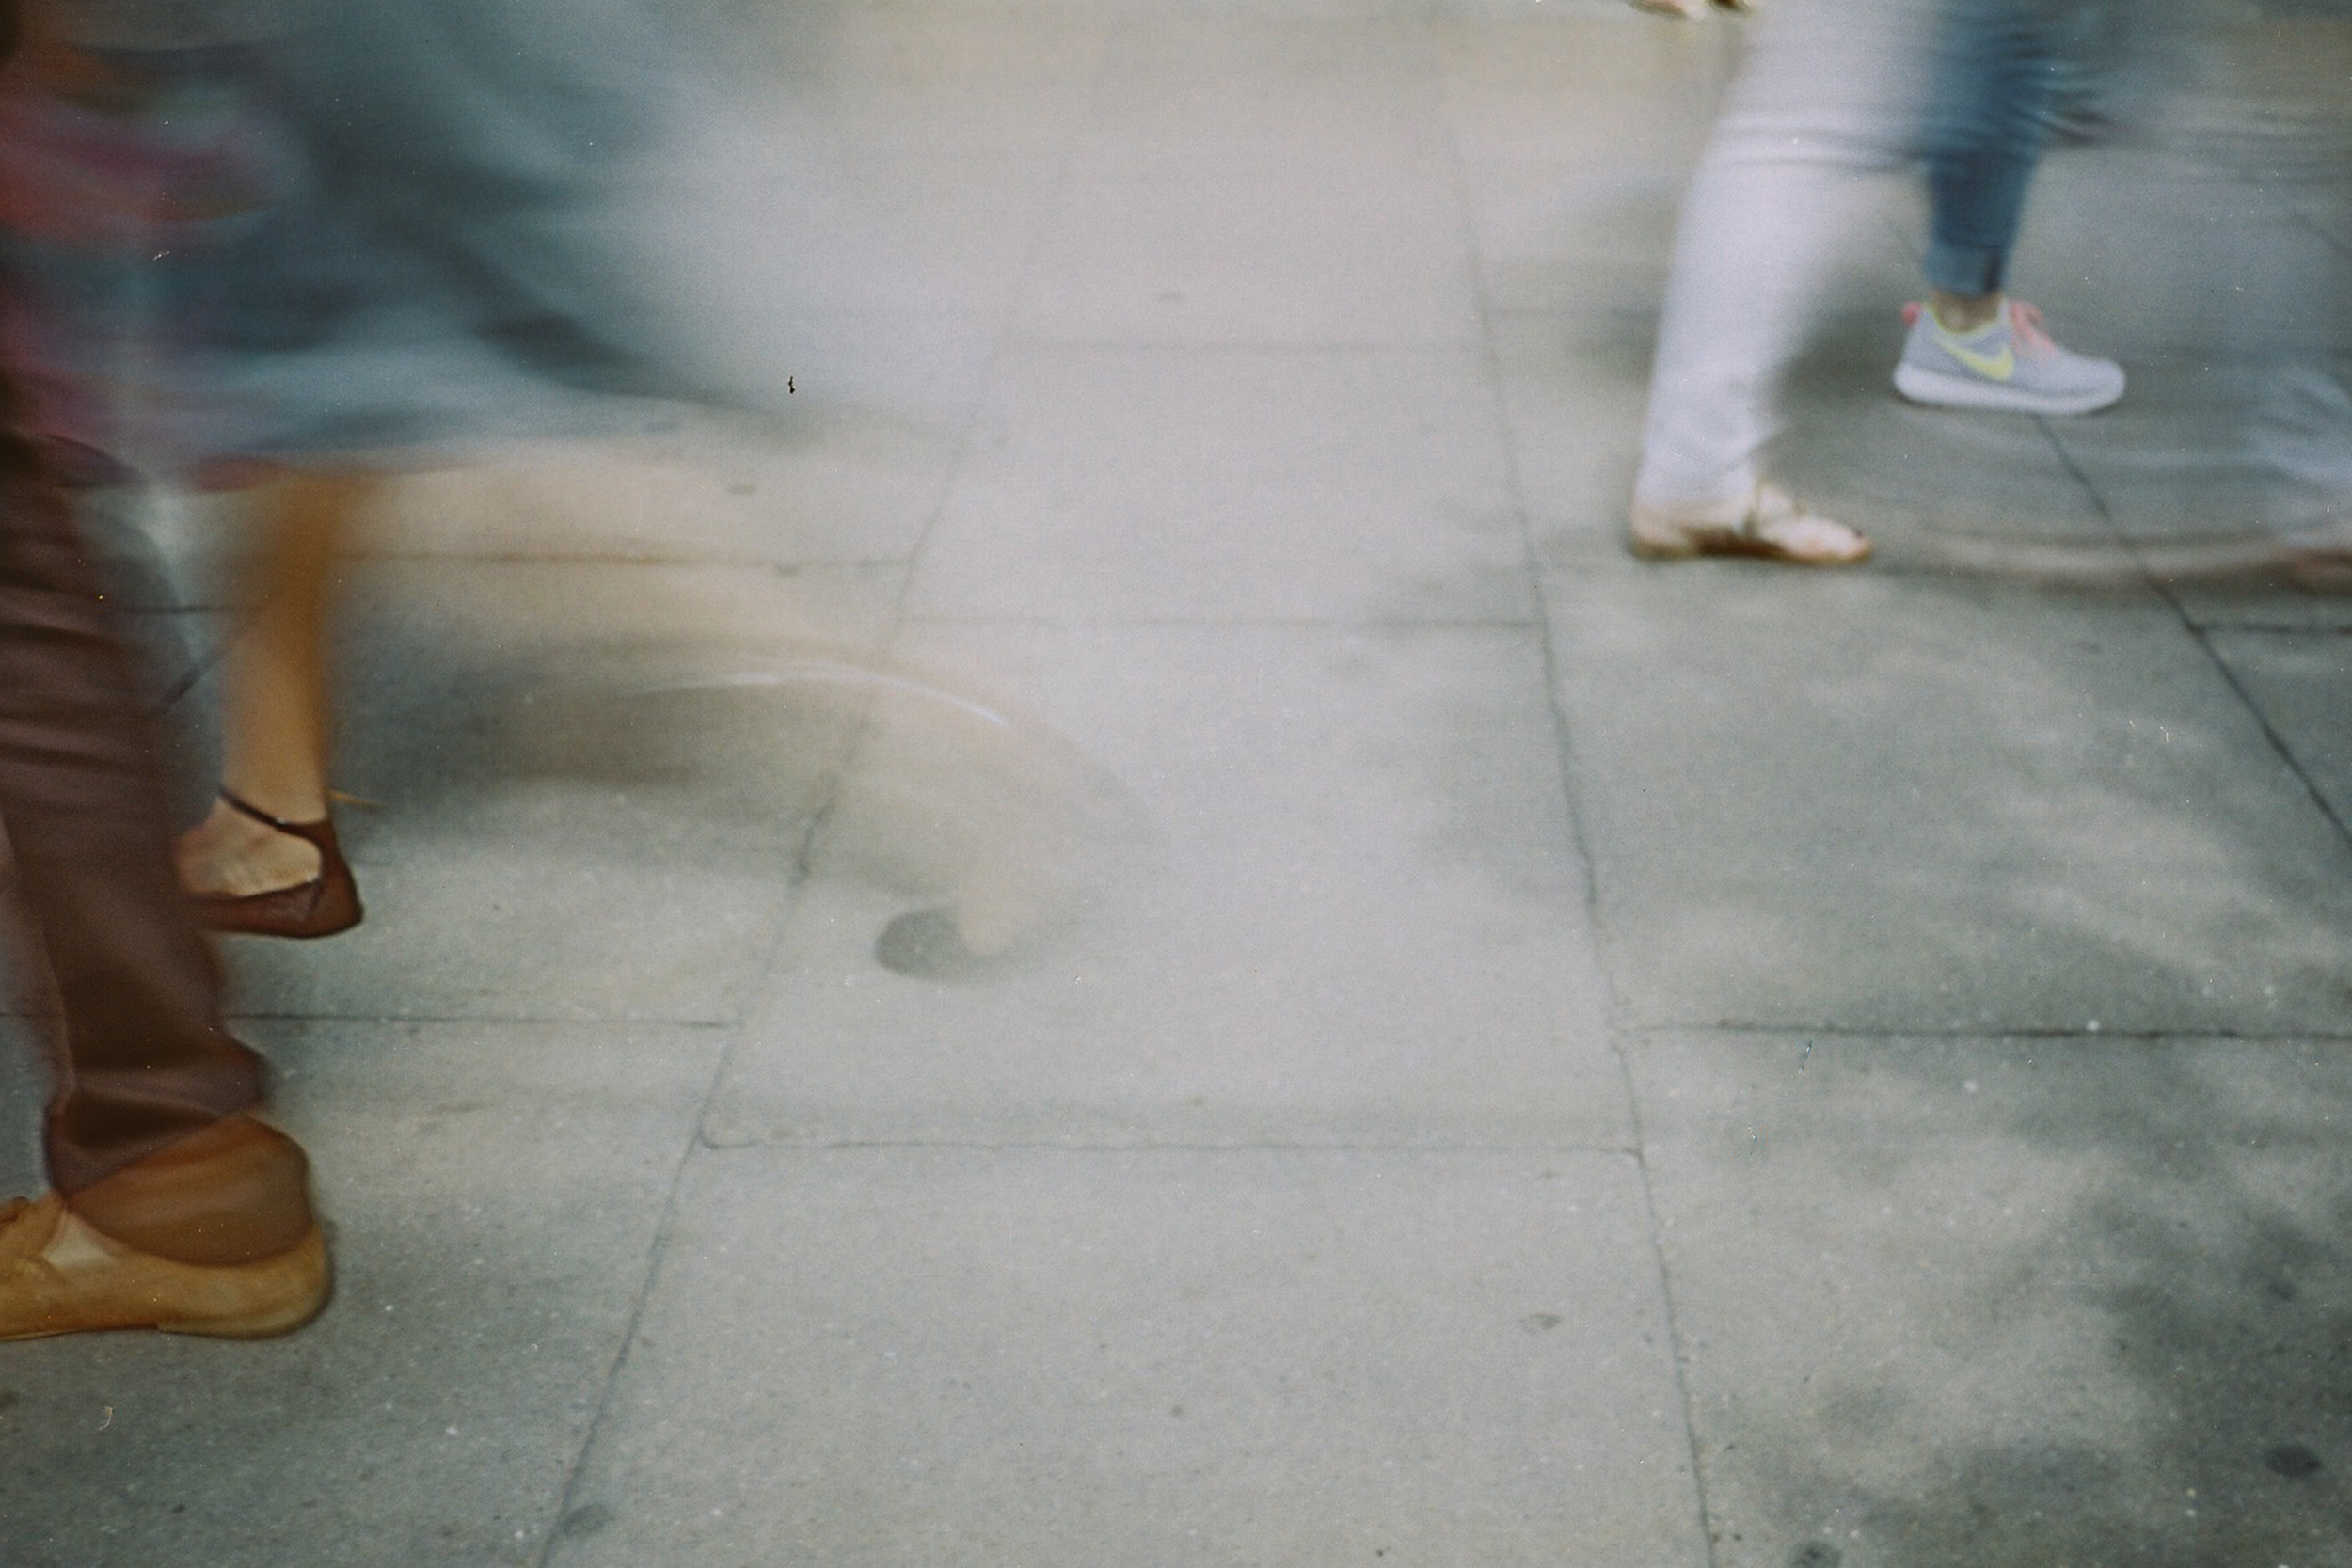 I took this photo in central London, on one of its busiest shopping streets, as I was waiting 30 minutes for someone.